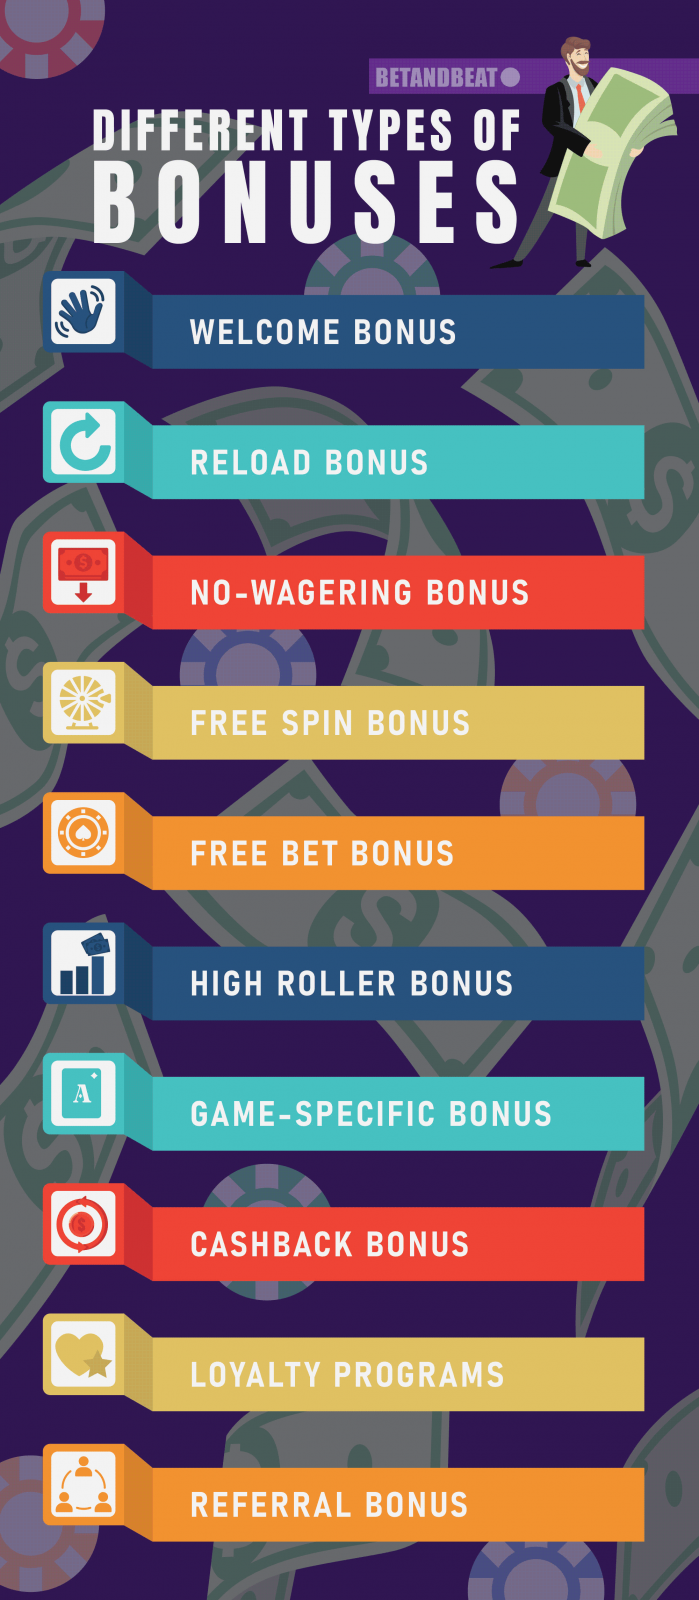 The Different Types of Bonuses